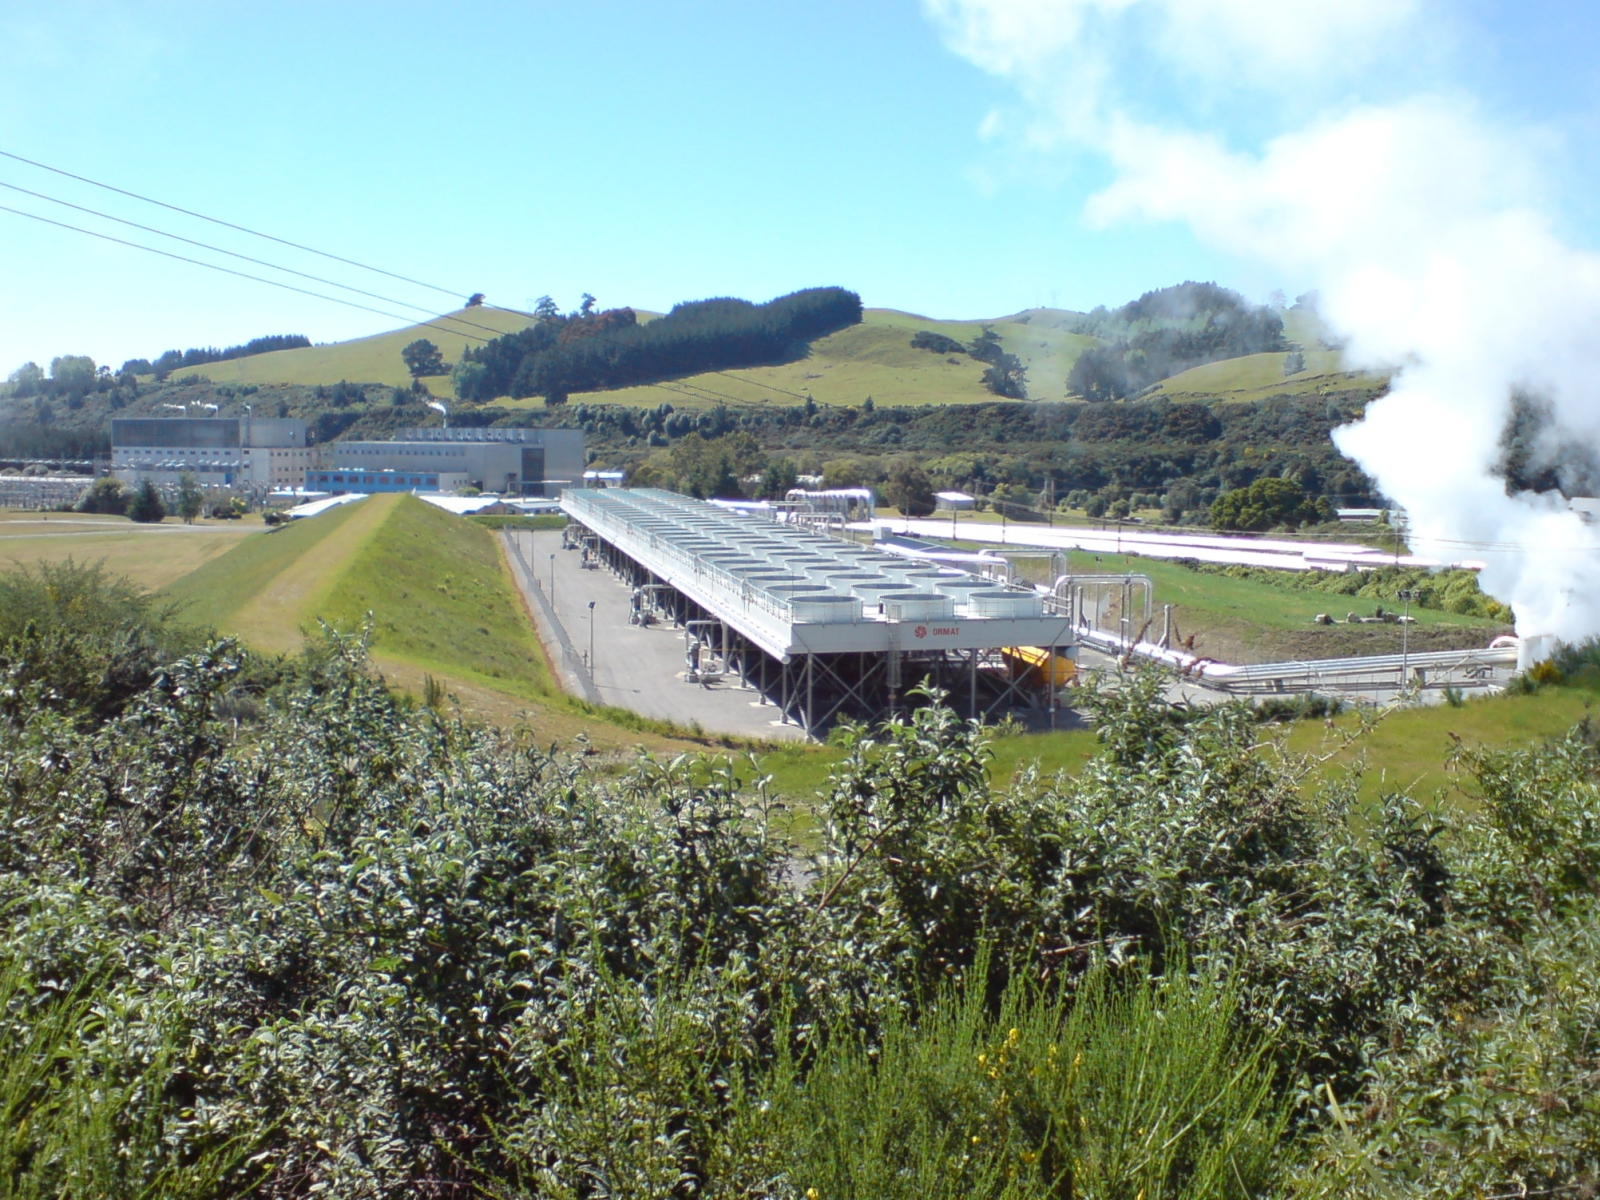 File:Wairakei Geothermal Power Plant.jpg - Wikipedia, the free ...